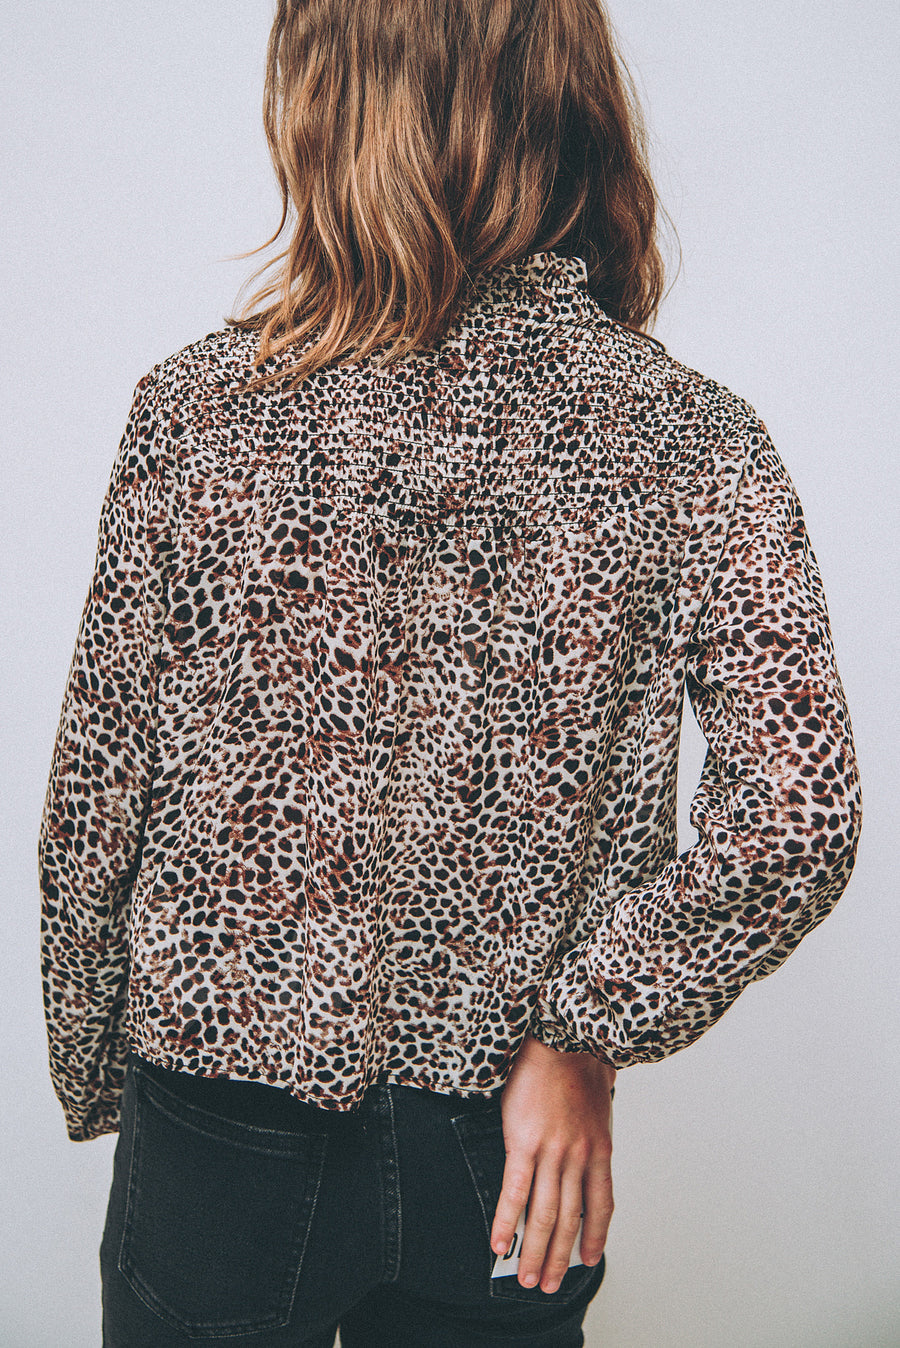 MINK PINK: UP TO YOU SHIRRING TOP-LEOPARD